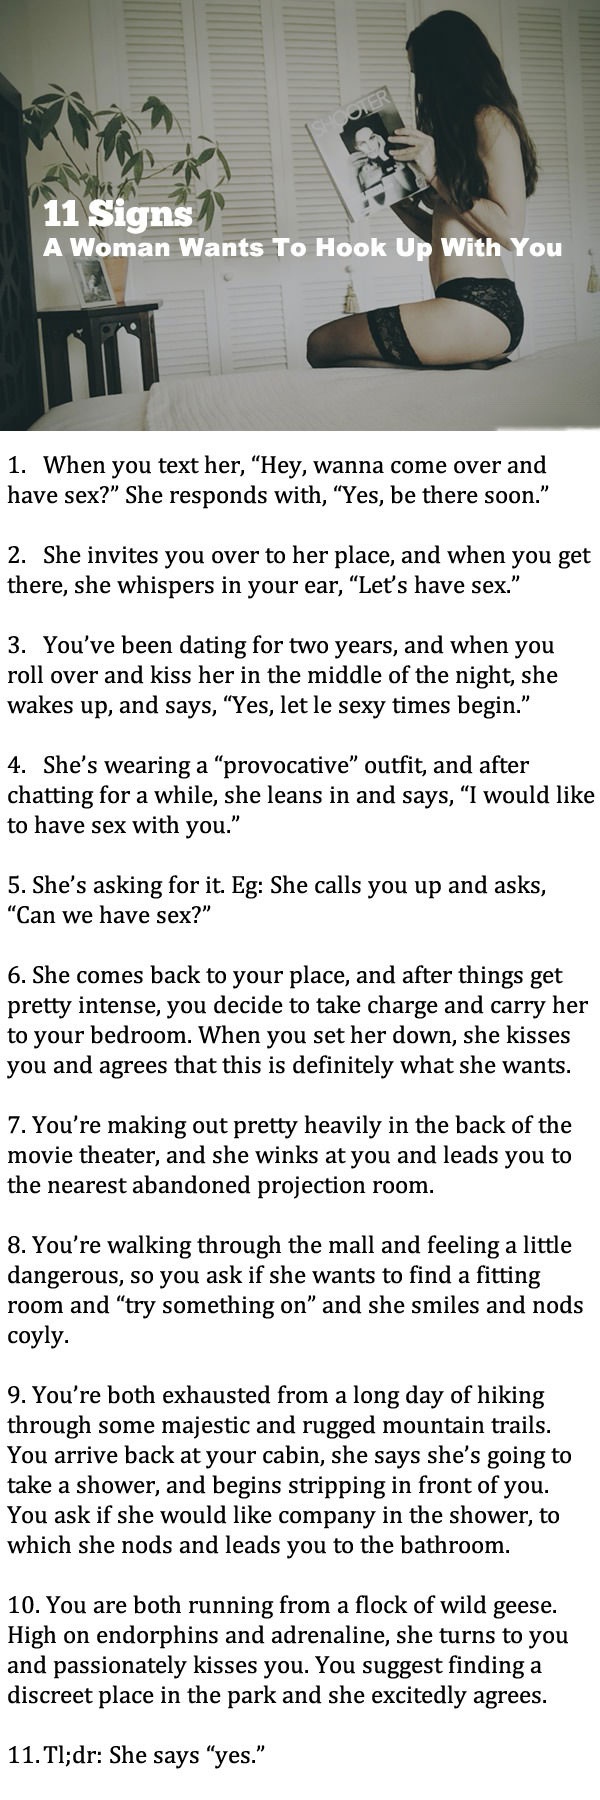 Signs a woman wants to fuck you